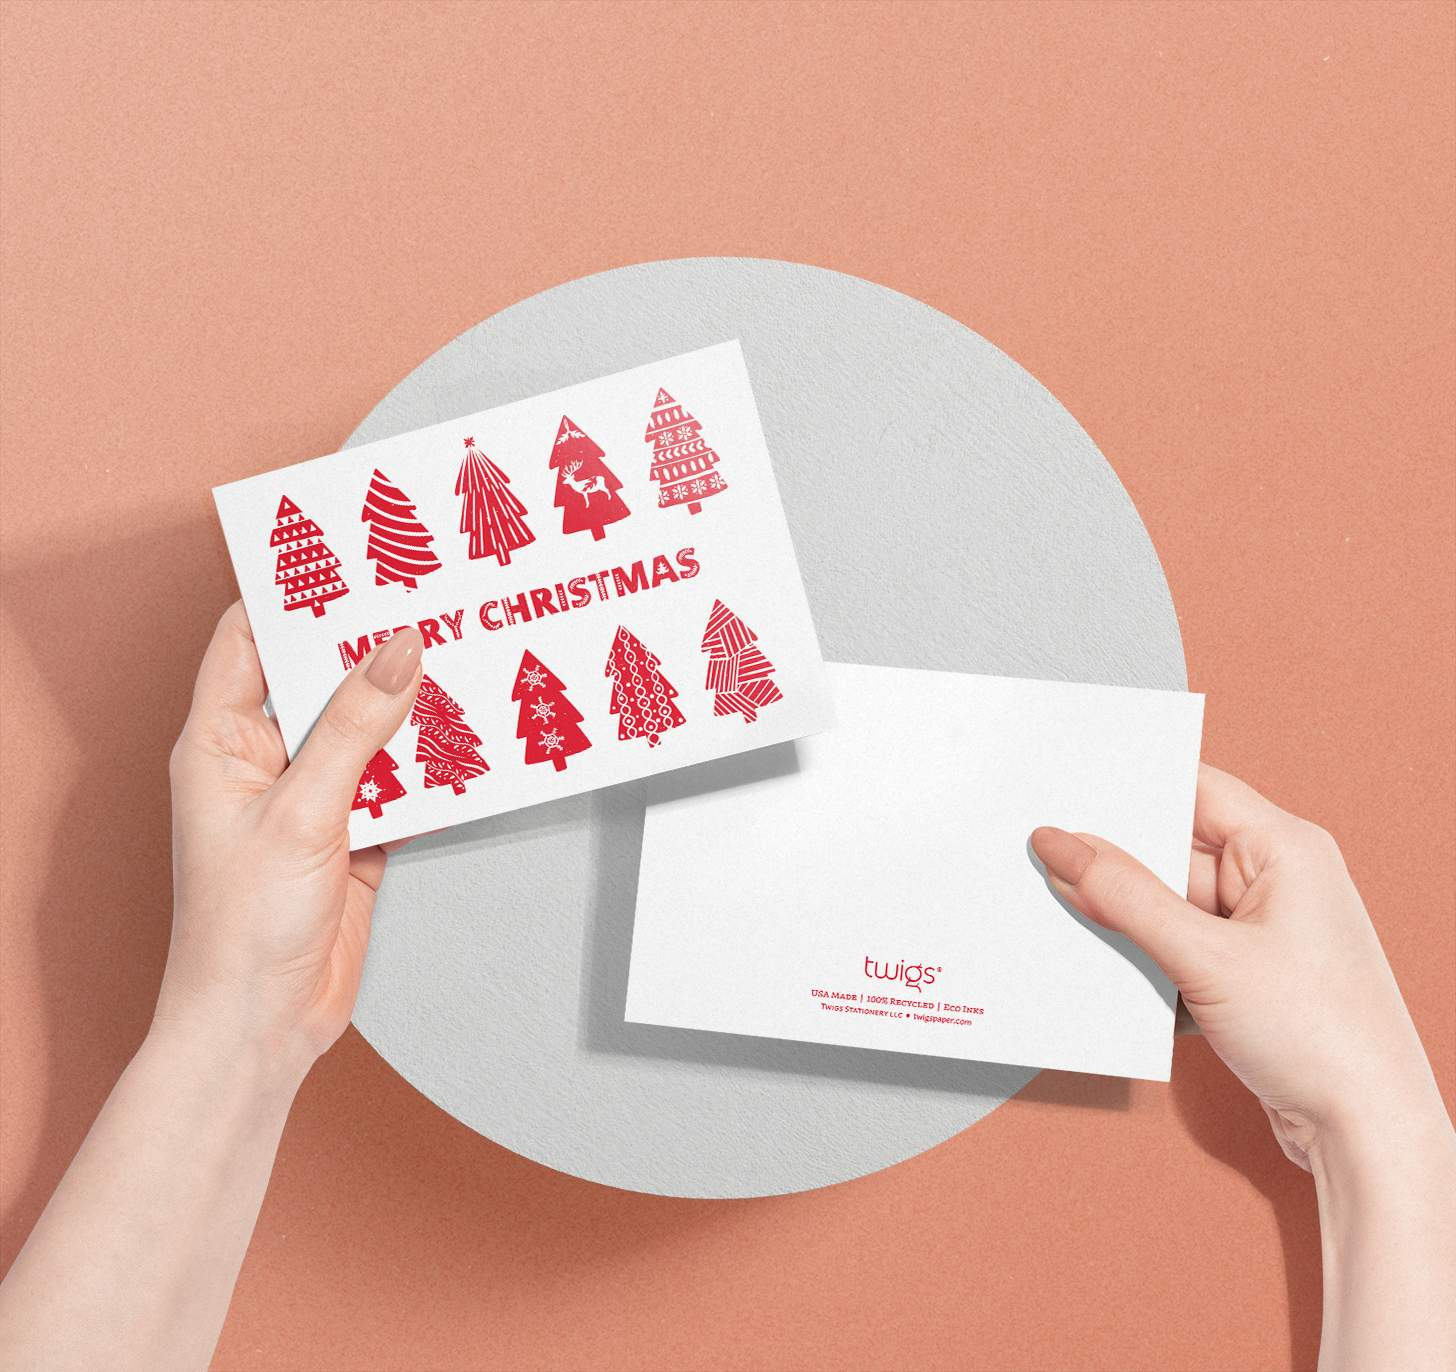 Hands holding red and white Merry Christmas with Christmas trees design